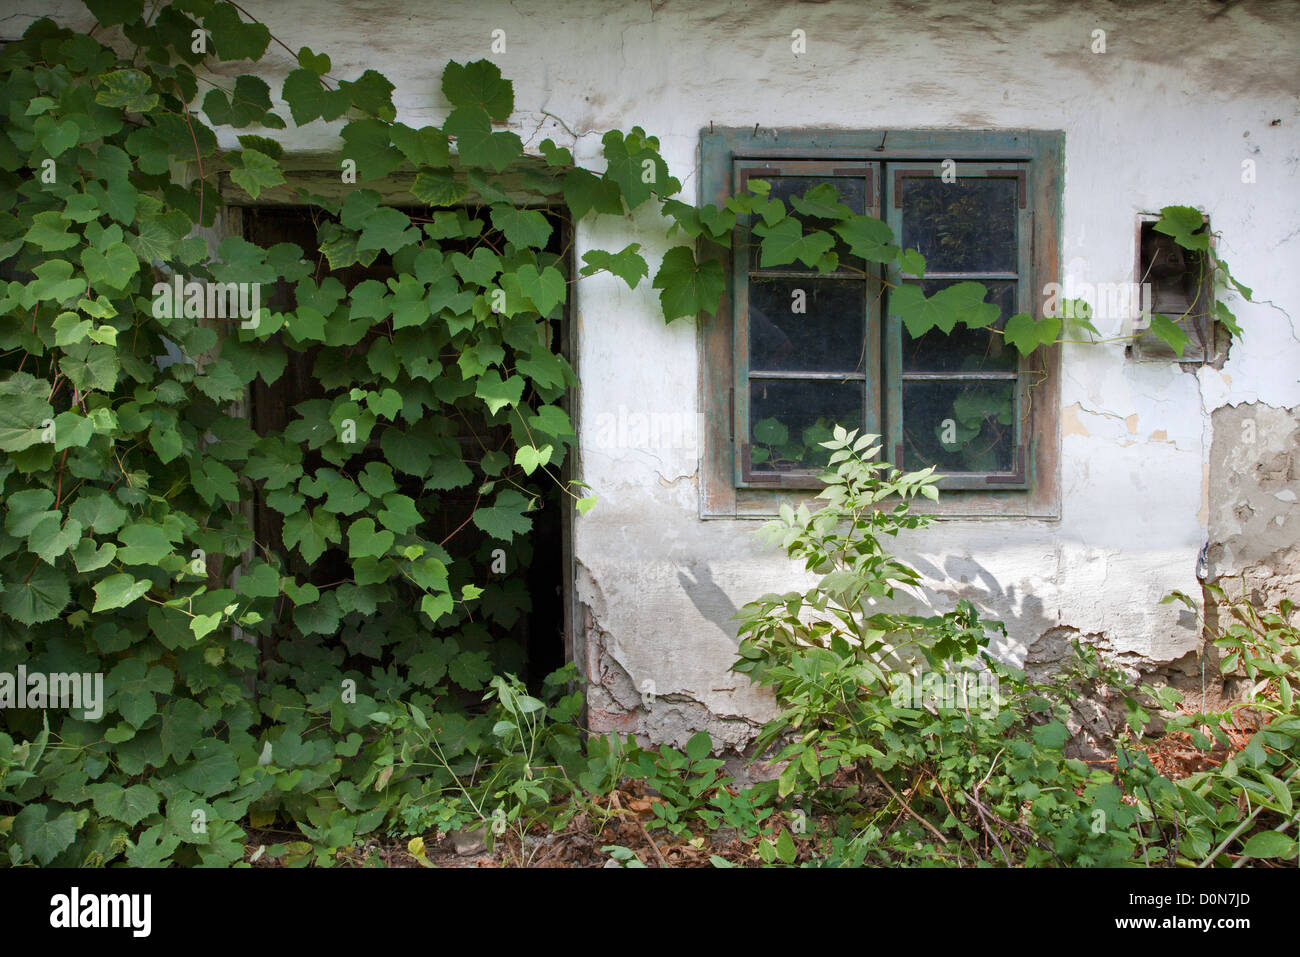 old window and woodbind - Stock Image